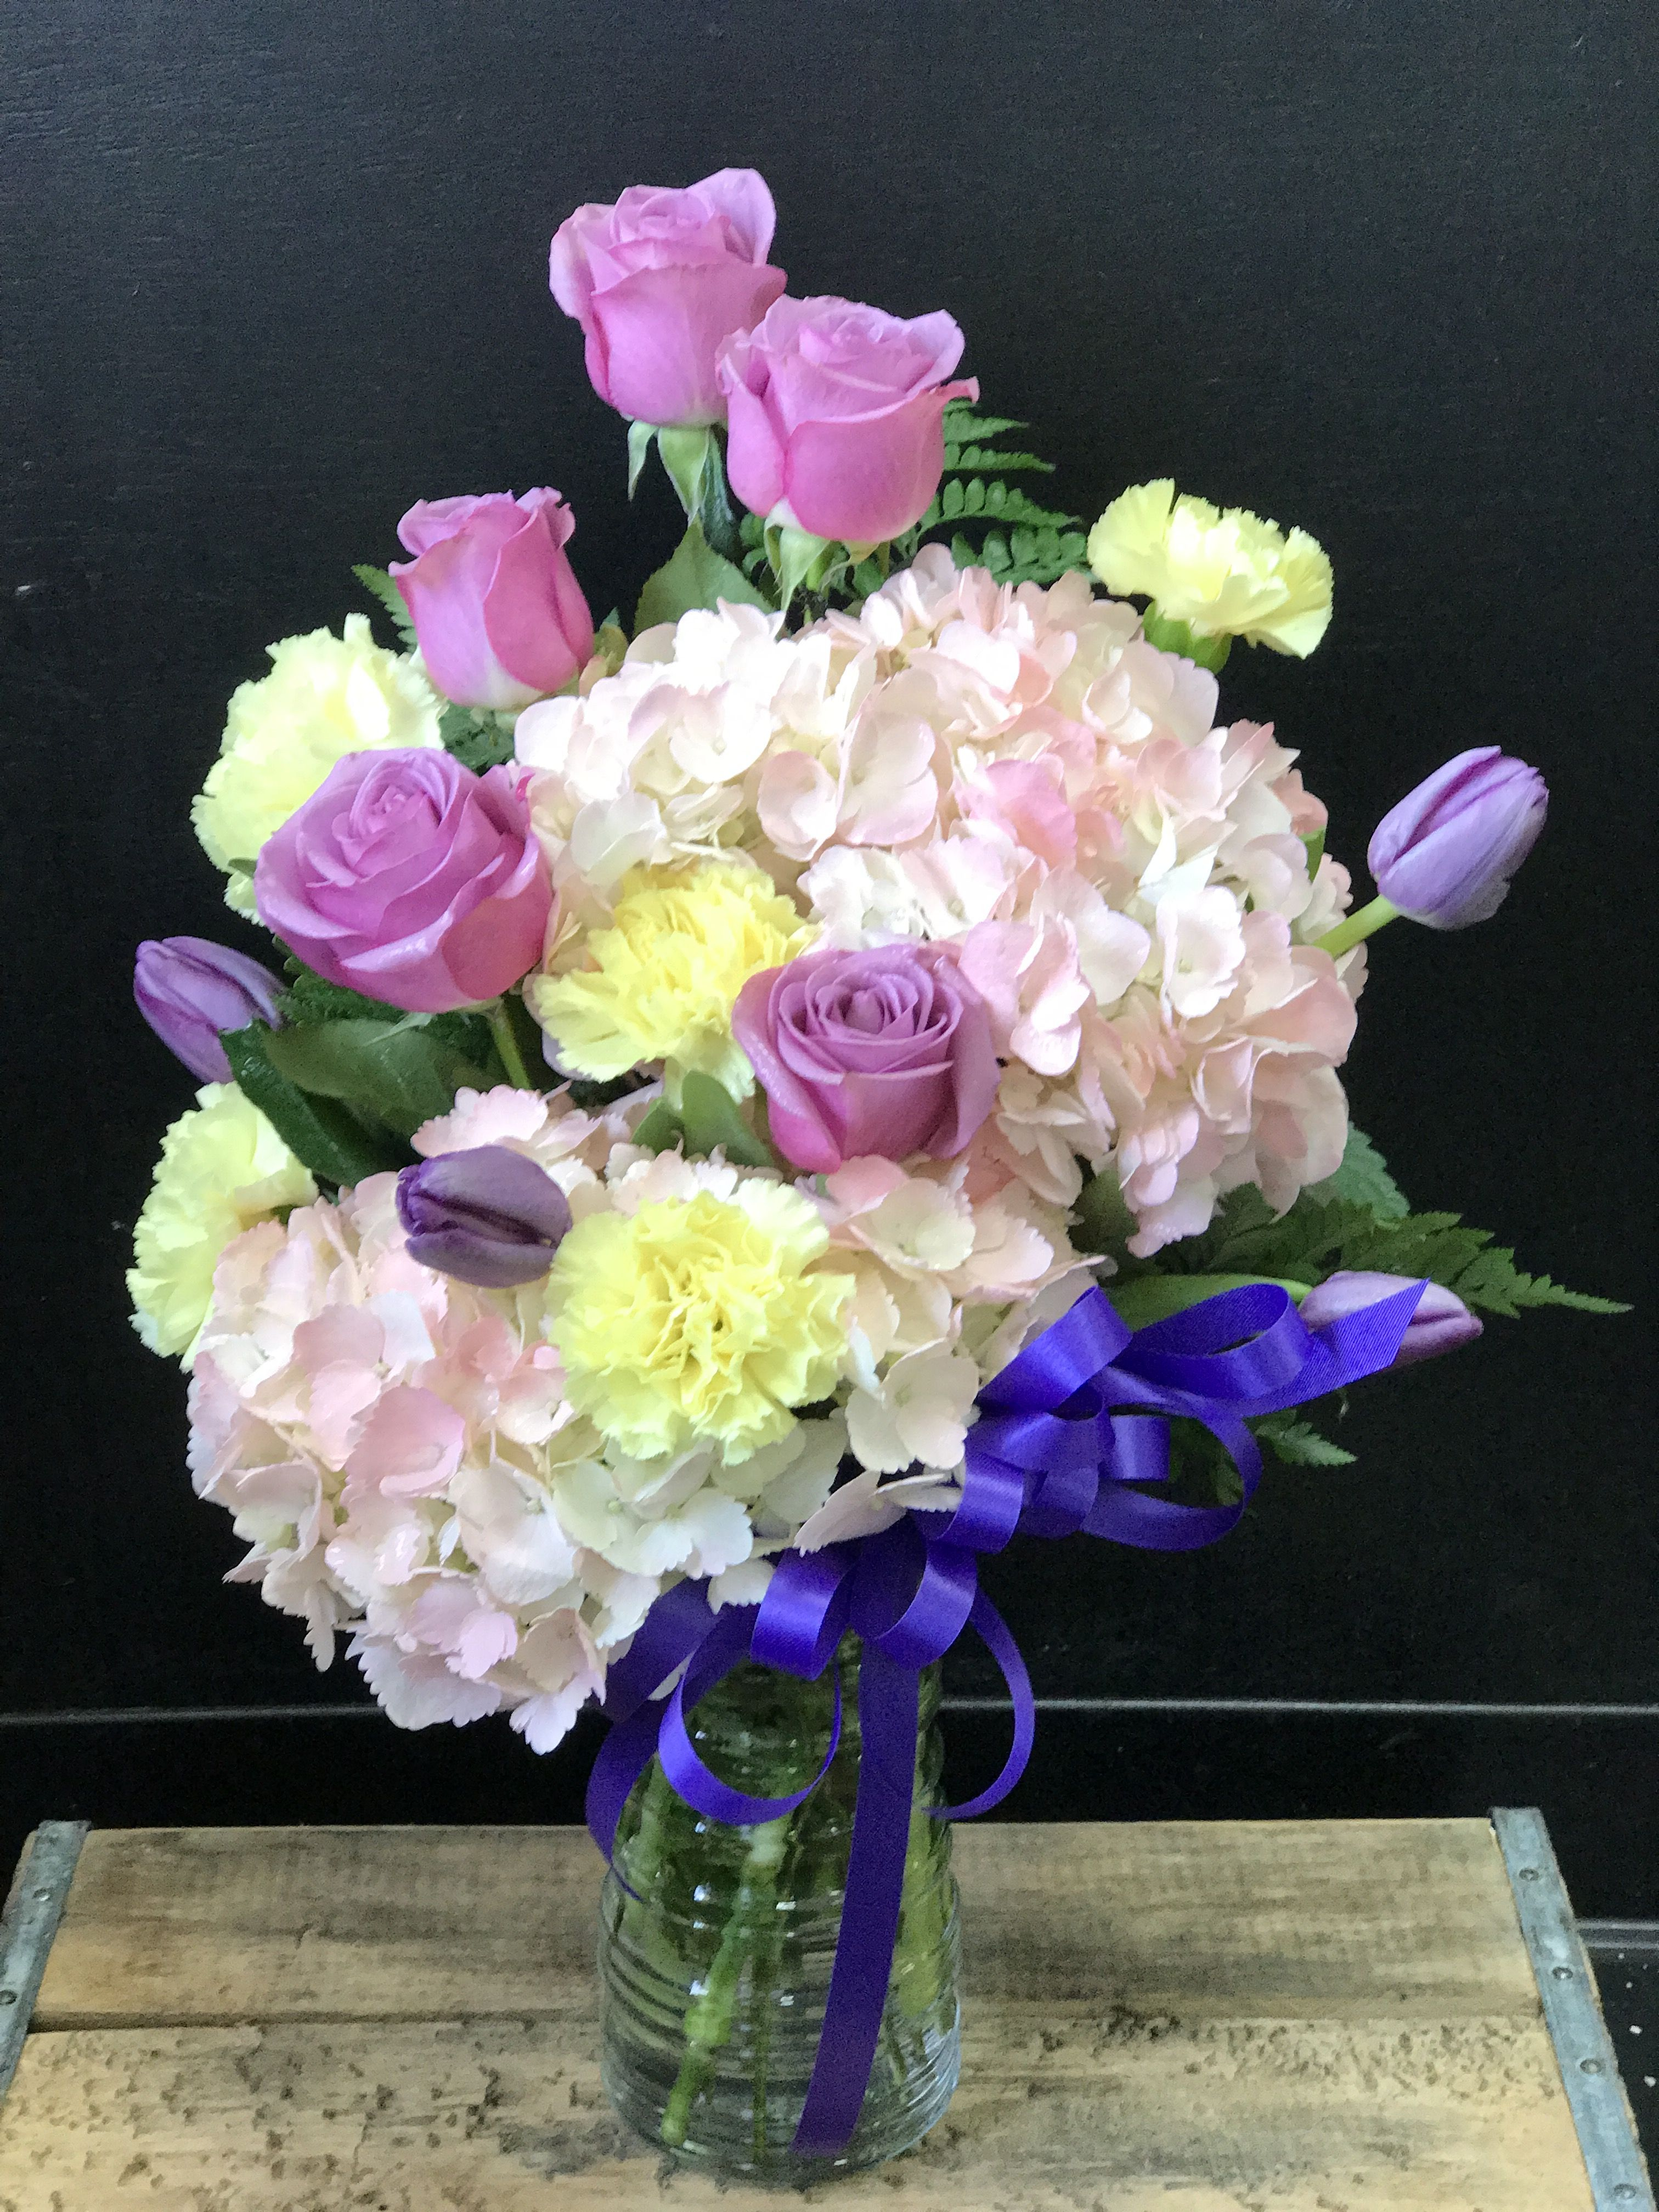 Everyday arrangements for any occasion at Hartman's